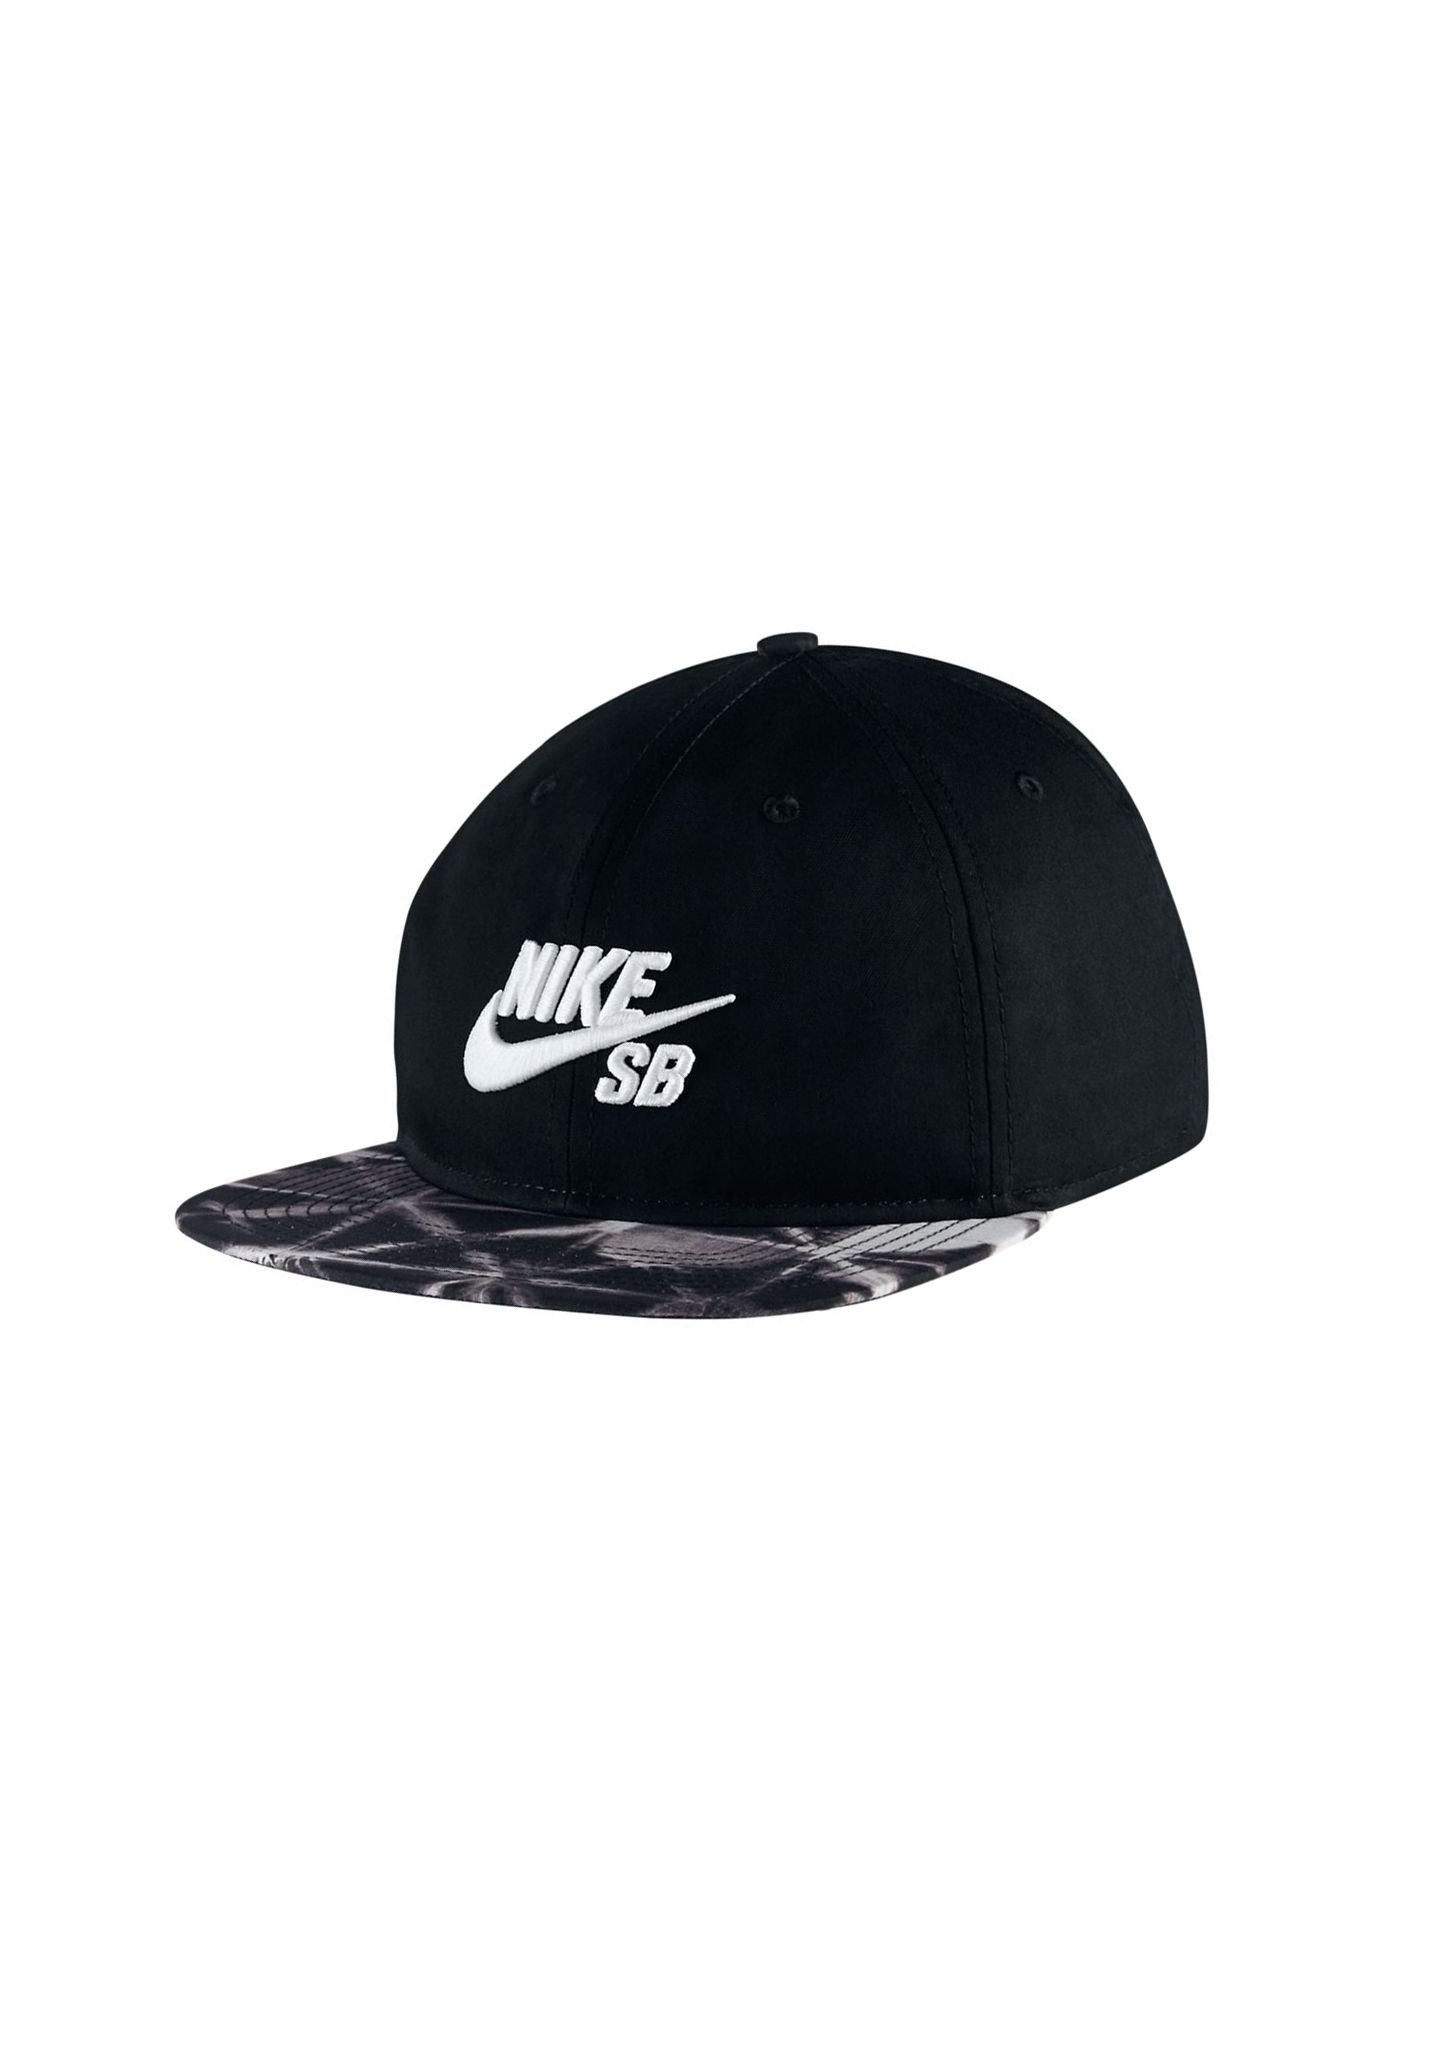 casquette reglable homme noir casquette reglable hiphop femme homme noir eozy casquette homme femme. Black Bedroom Furniture Sets. Home Design Ideas